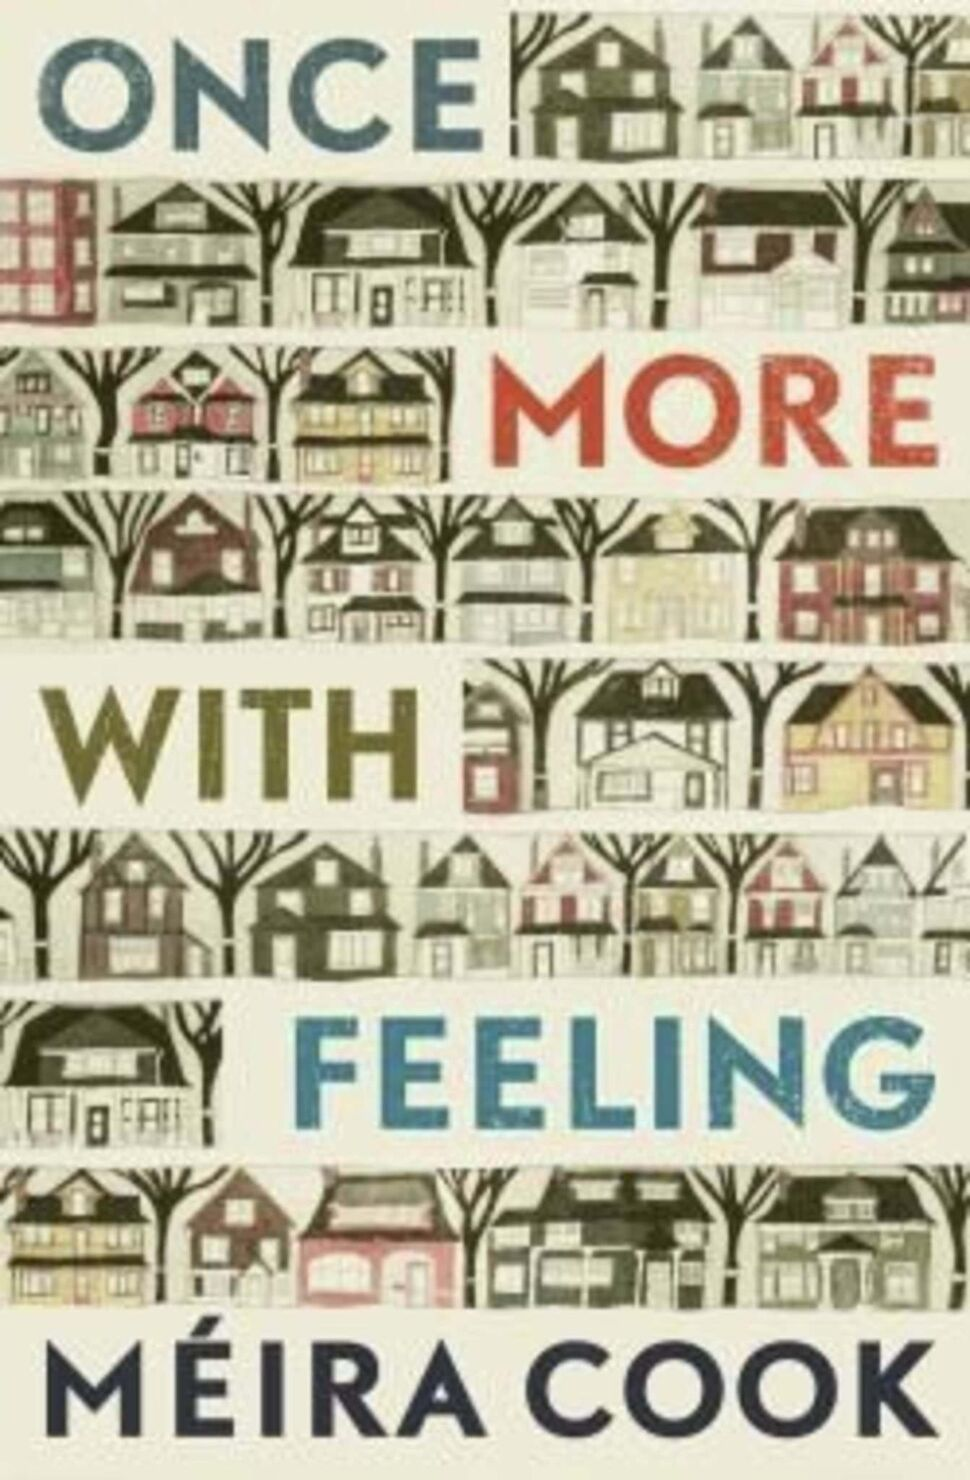 Once More With Feeling</p><p>By M&#233;ira Cook</p><p>House of Anansi, Sept. 23</p><p>Cook (Nightwatching, The House on Sugarbush Road), born in South Africa but now based in Winnipeg, sets her new novel in an unnamed Prairie city that will be familiar to local readers. The book follows the chain of events throughout the community that are set off by a man&rsquo;s desire to get his wife the perfect 40th birthday gift.</p>